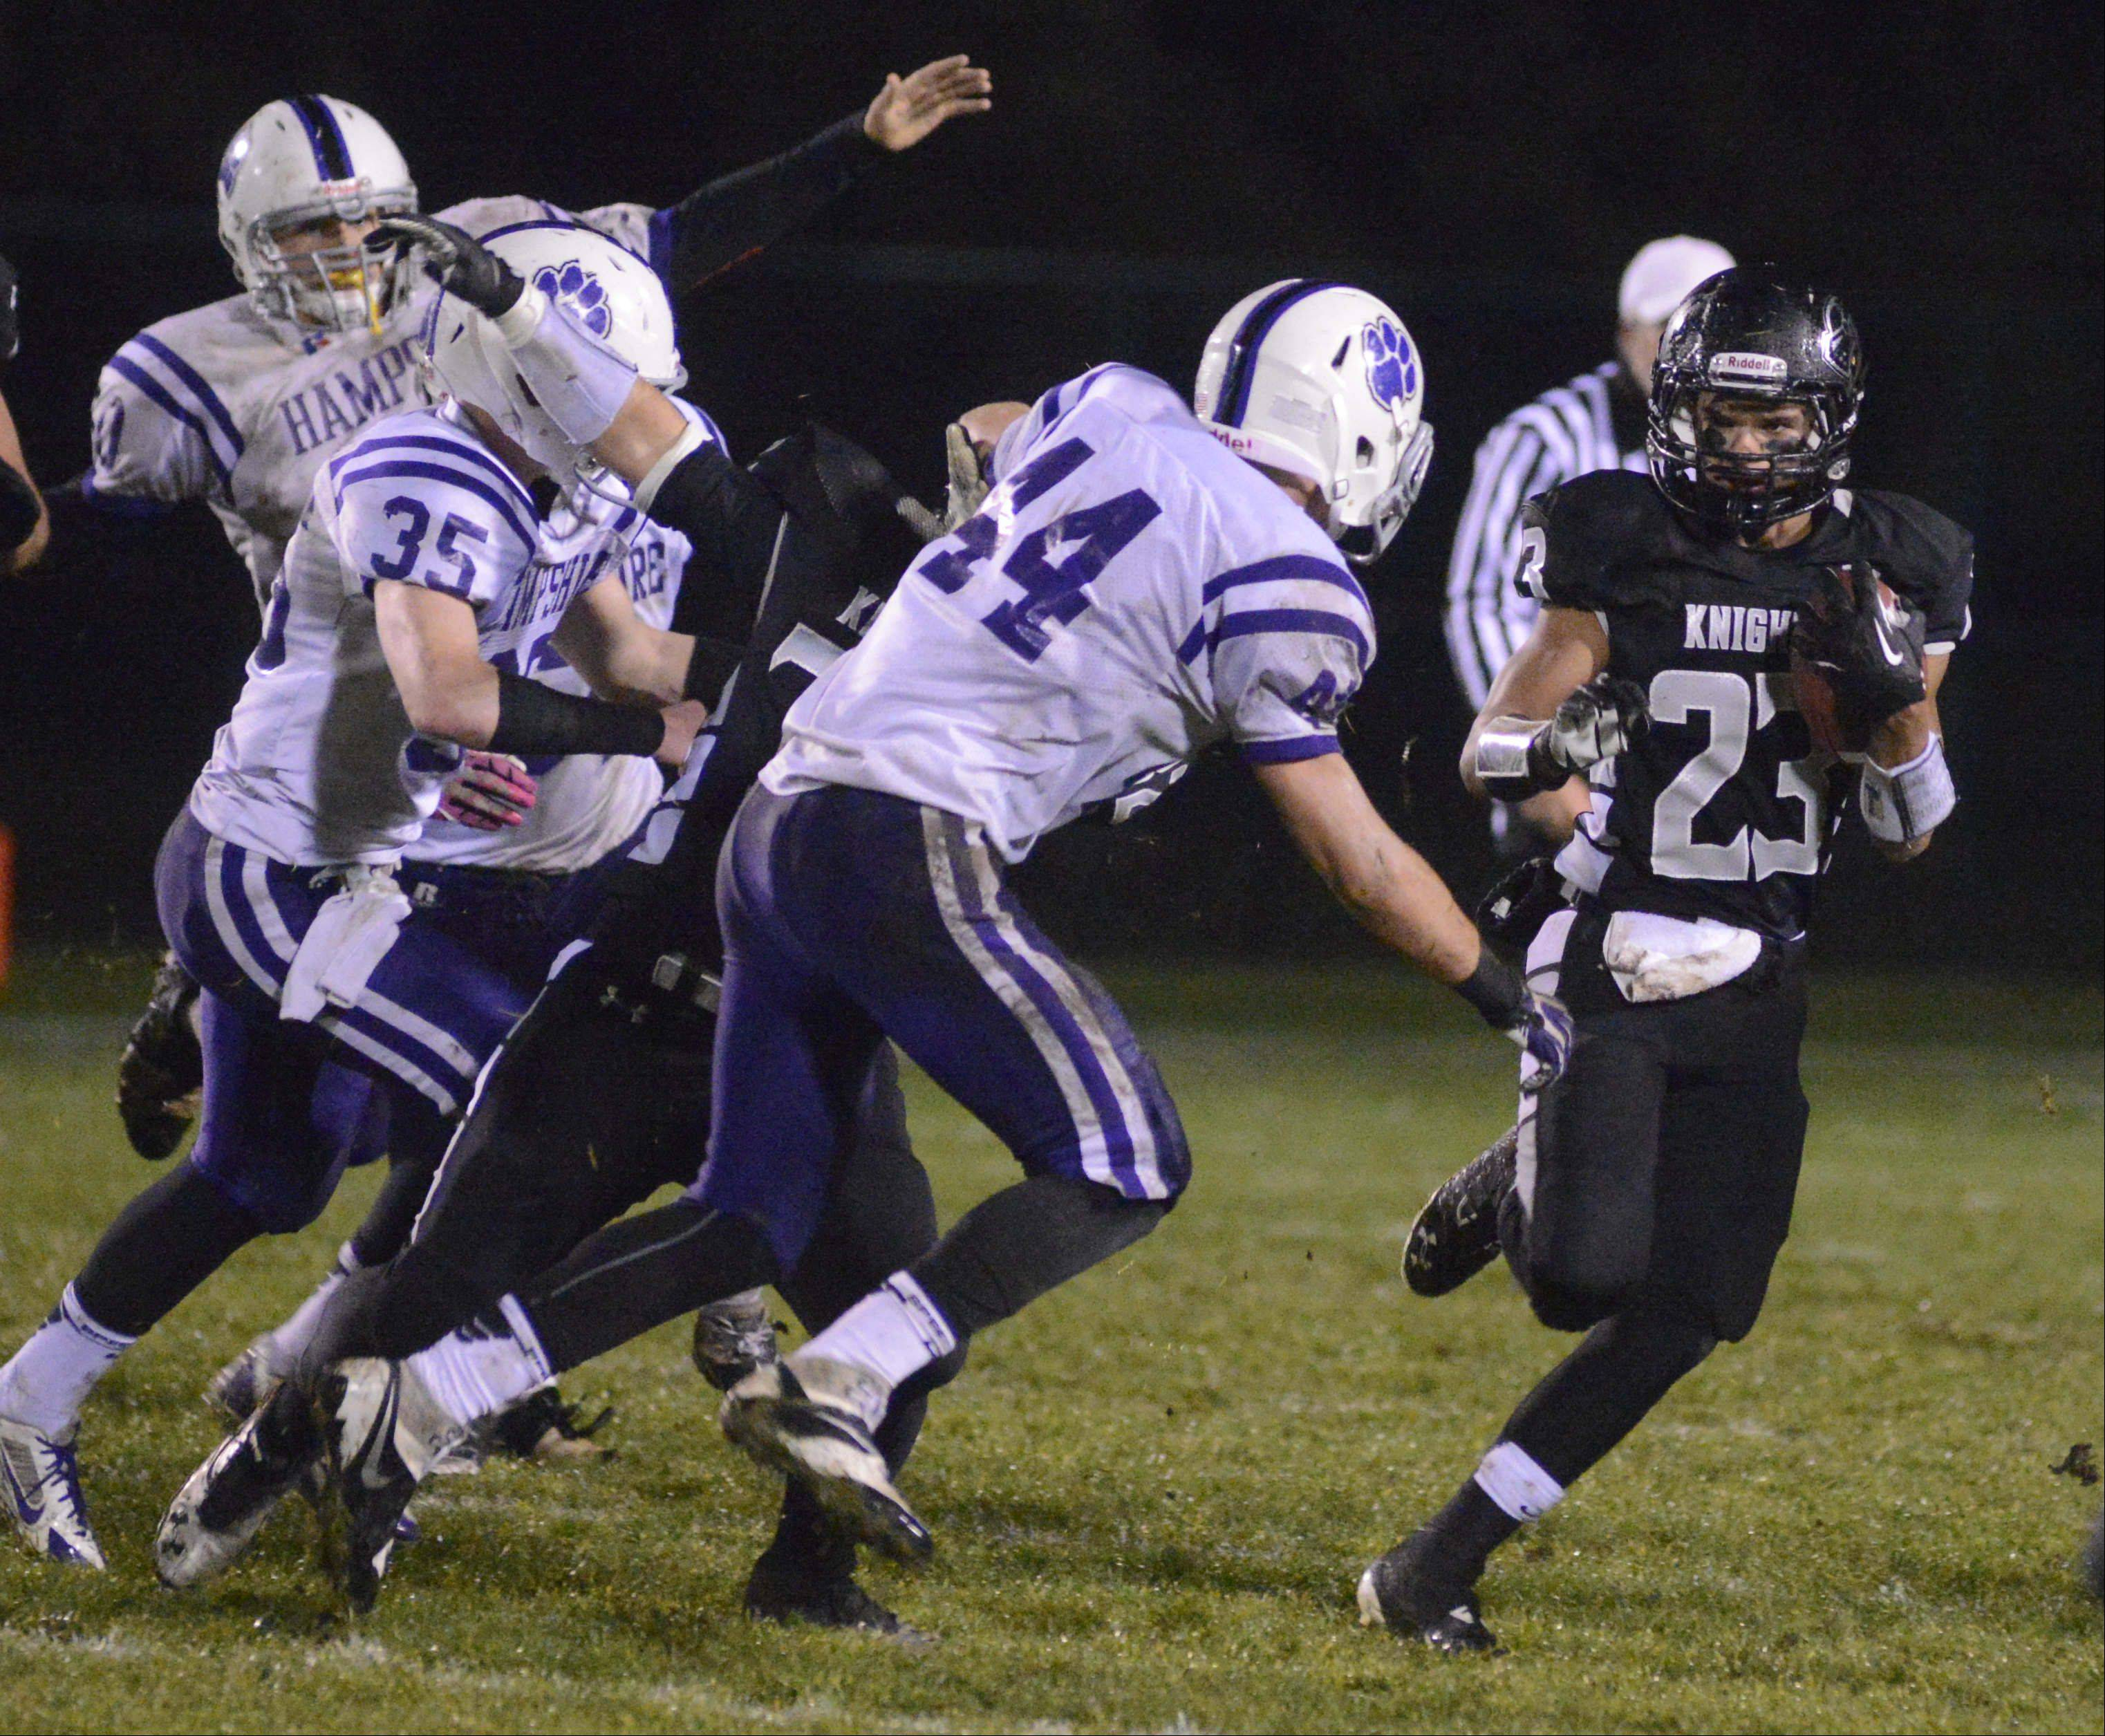 Playoffs - Round One - Images from the Hampshire vs. Kaneland football game Friday, November 1, 2013.